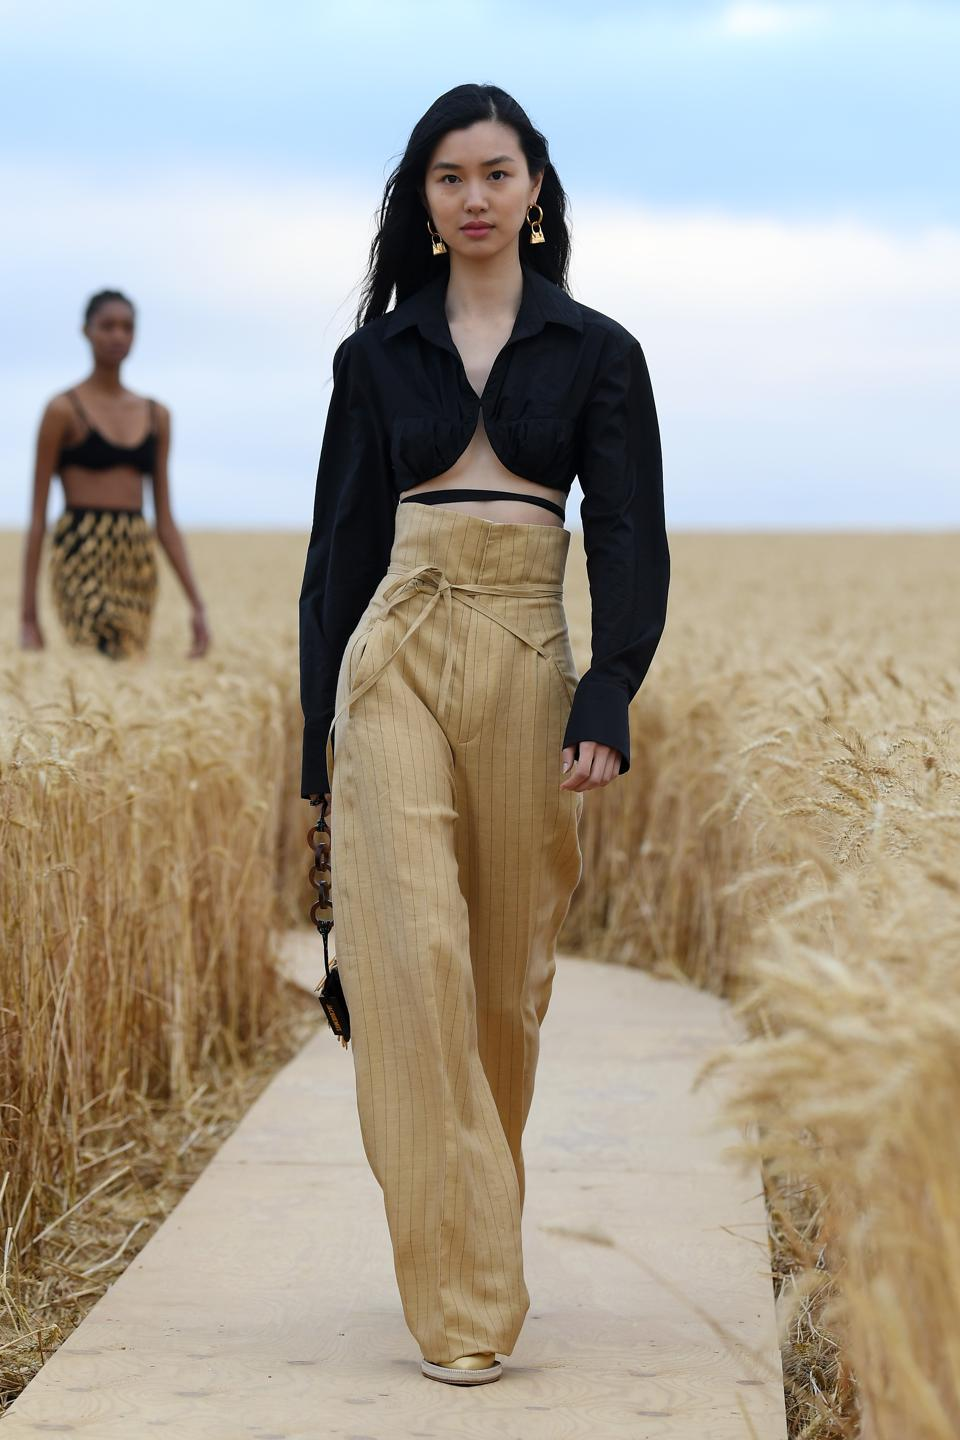 A model in a black cardigan and tan pants walks on a runway in a wheat field